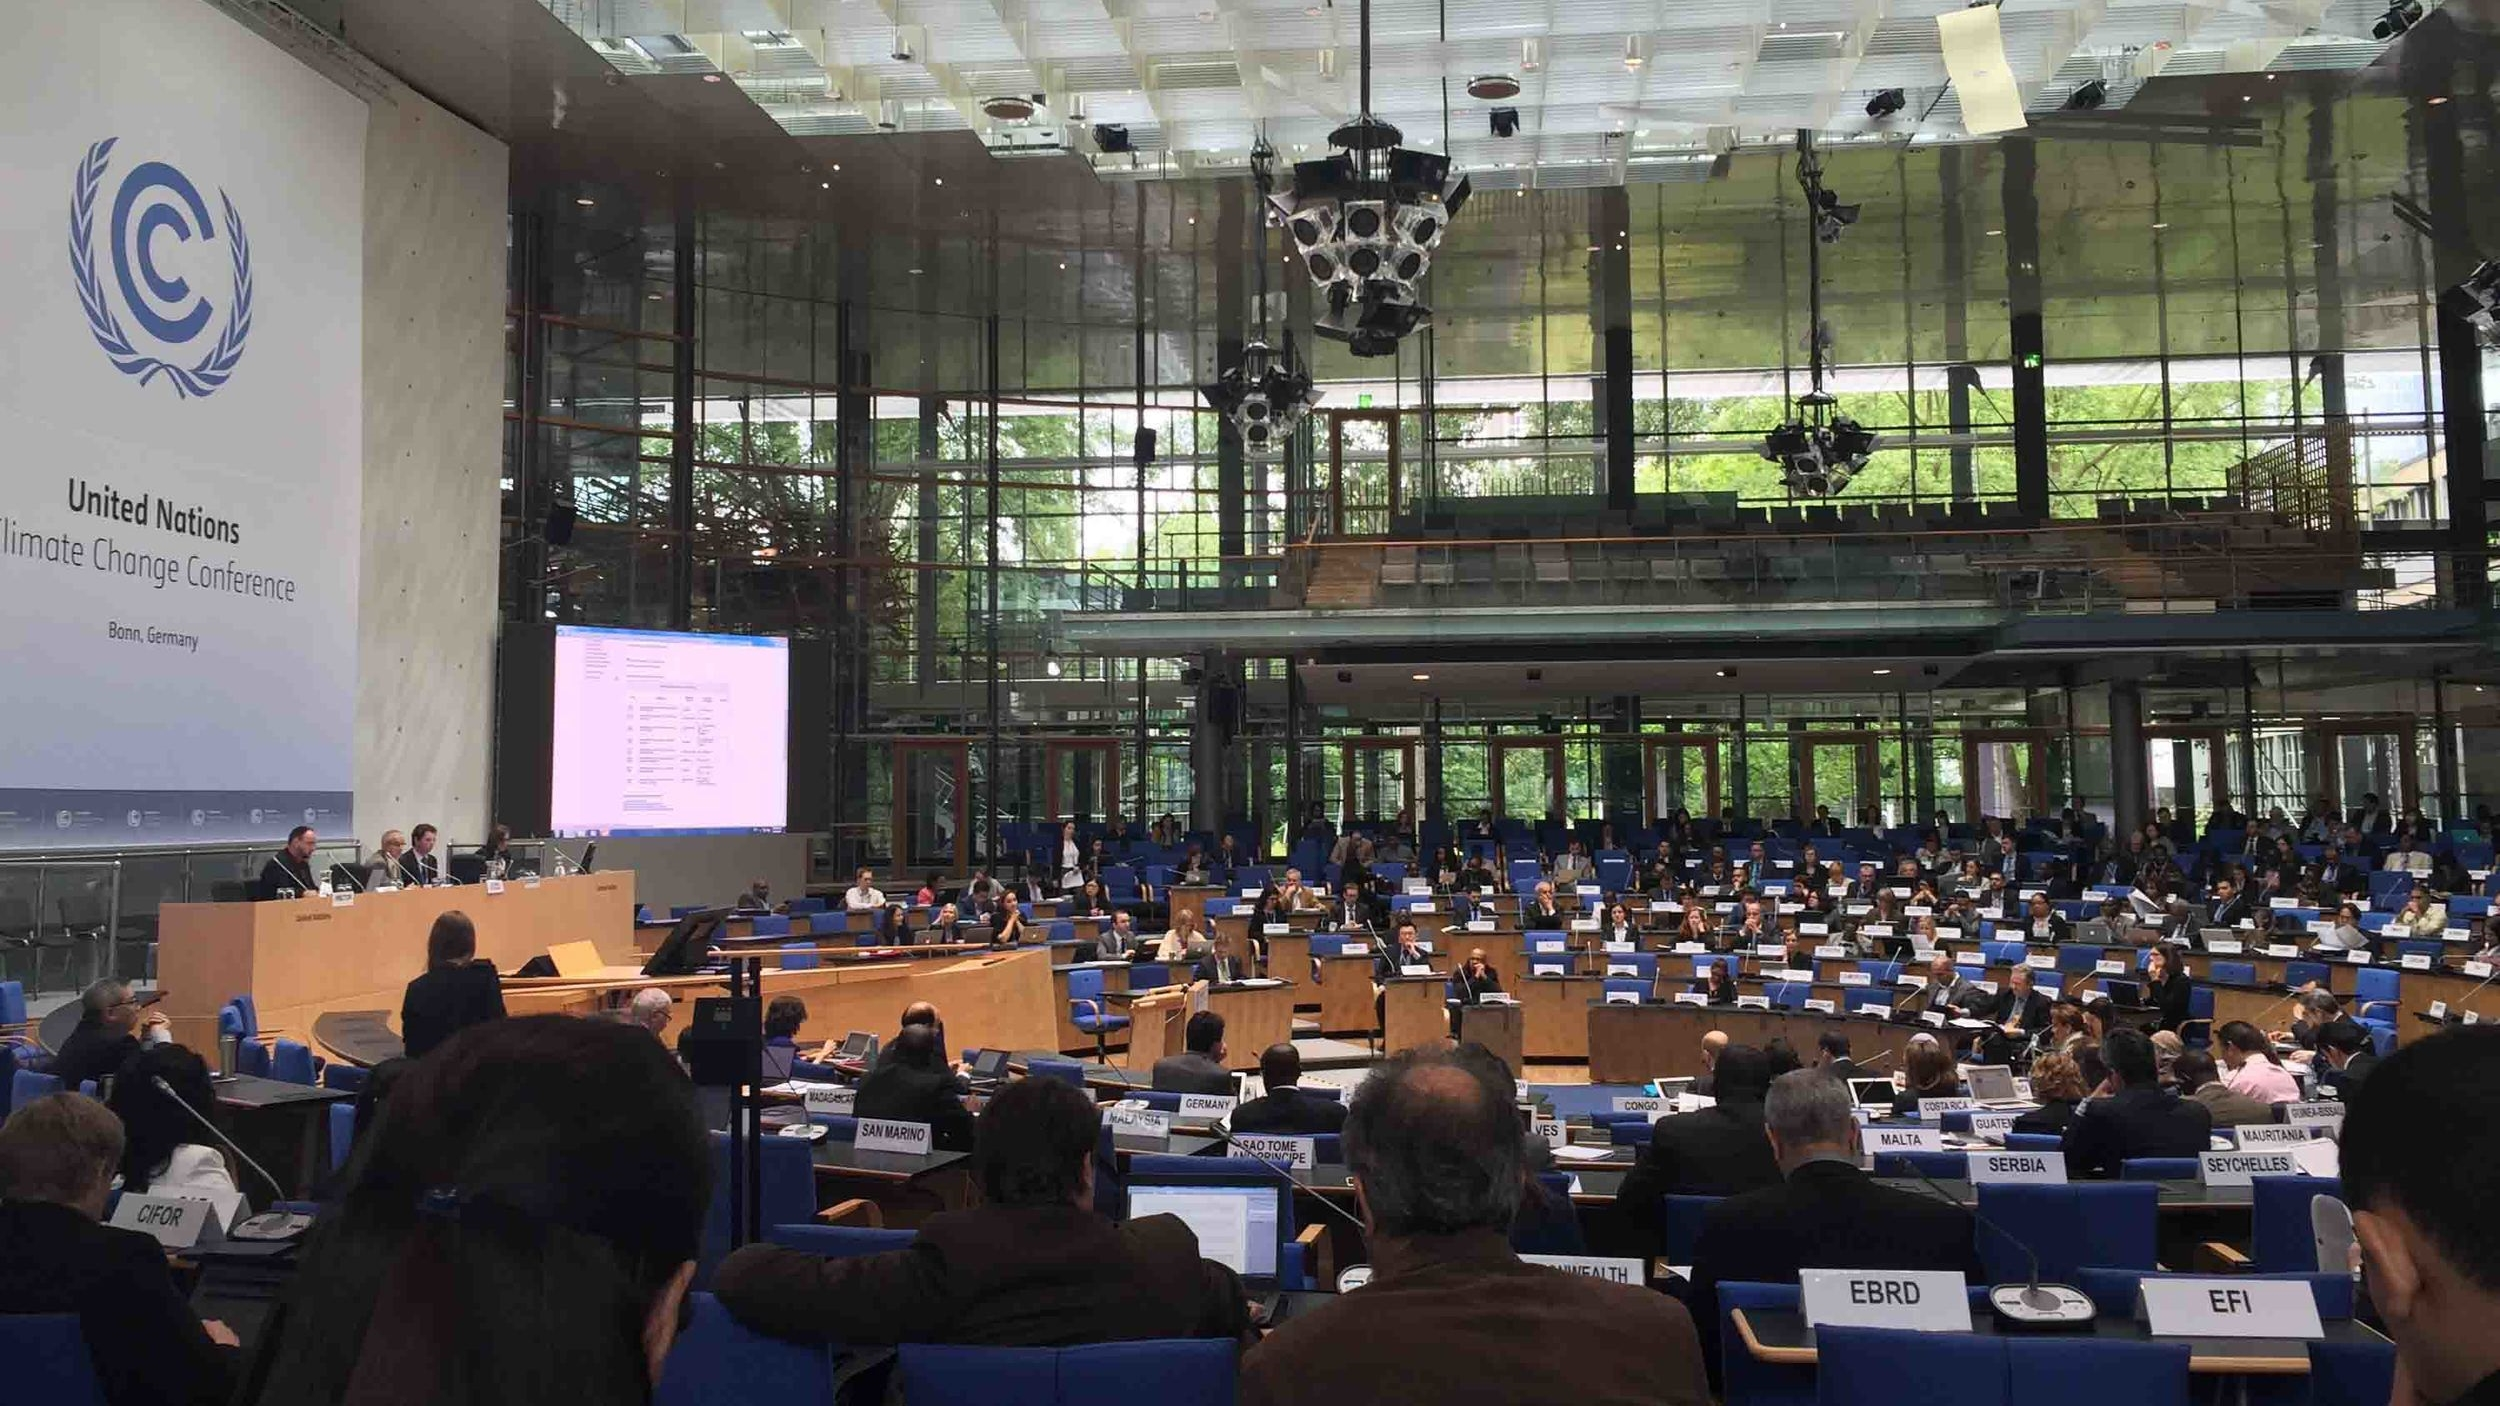 The UN 'Conference of the Parties' main floor in Bonn